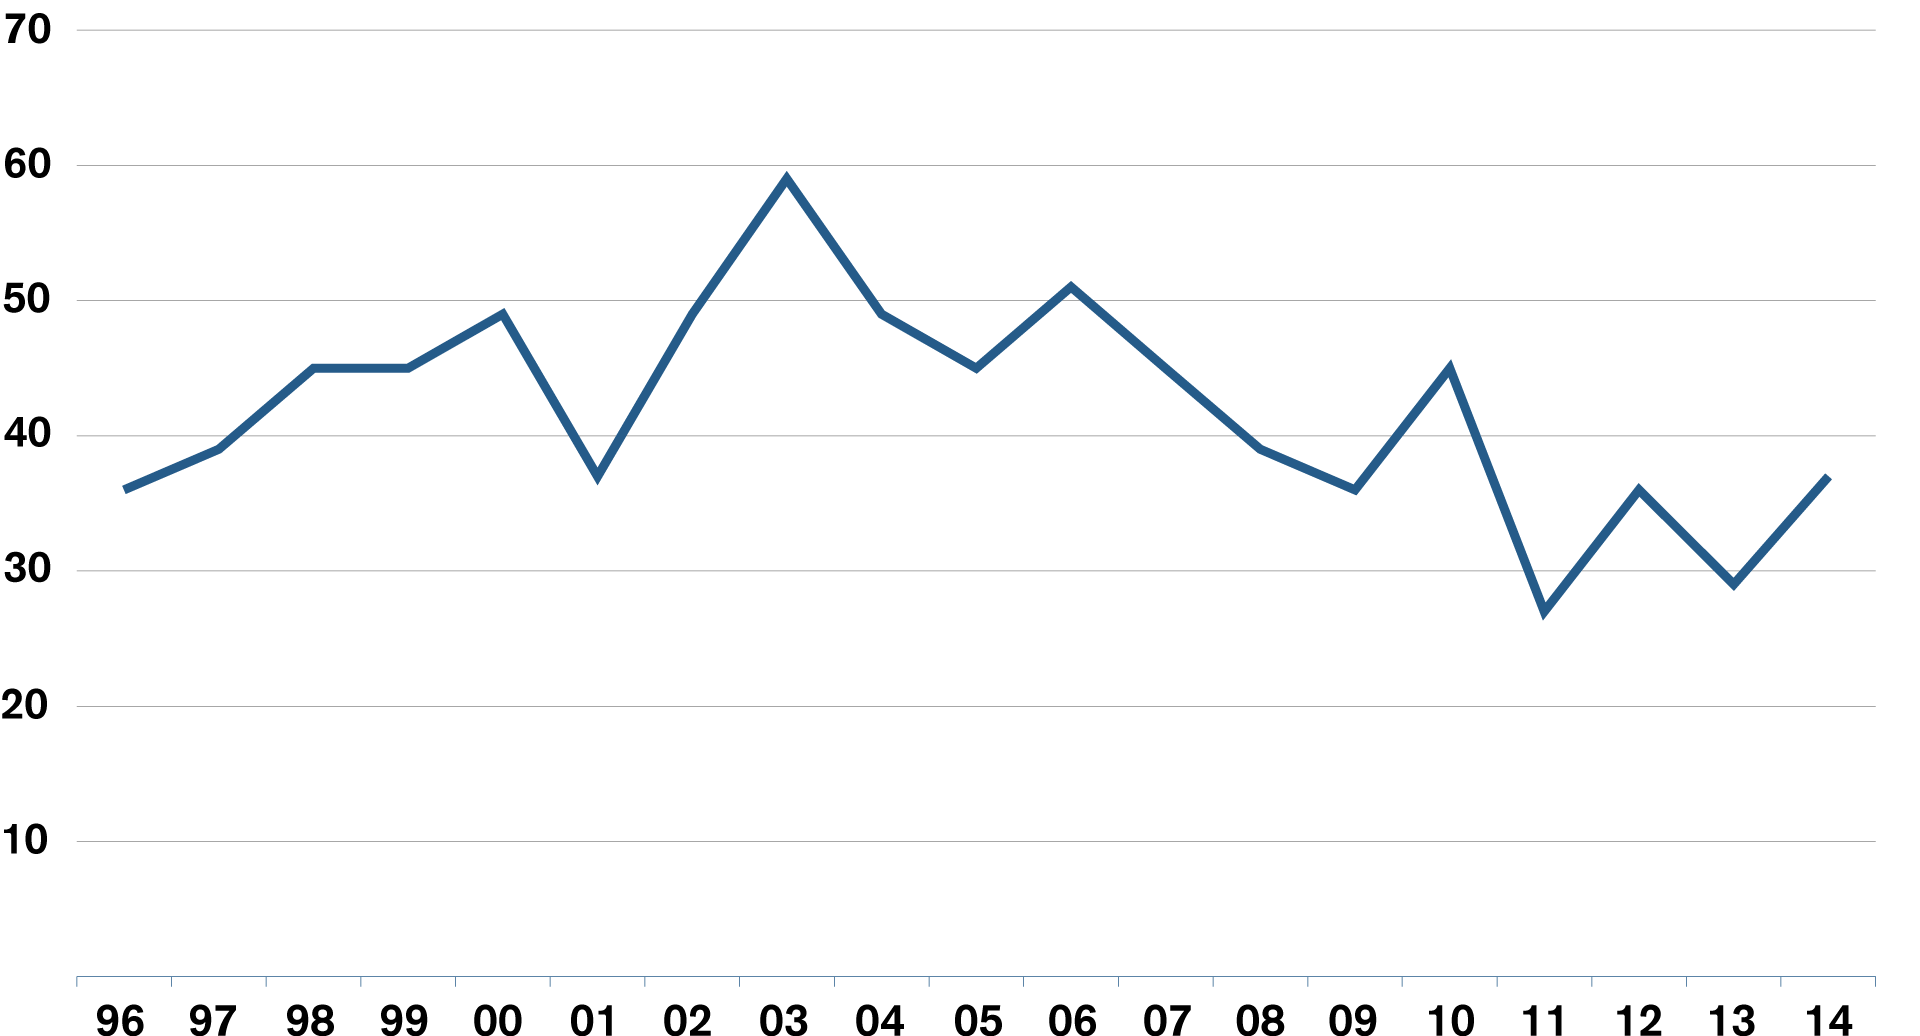 Trend in Problem Awareness (1996 to 2014)